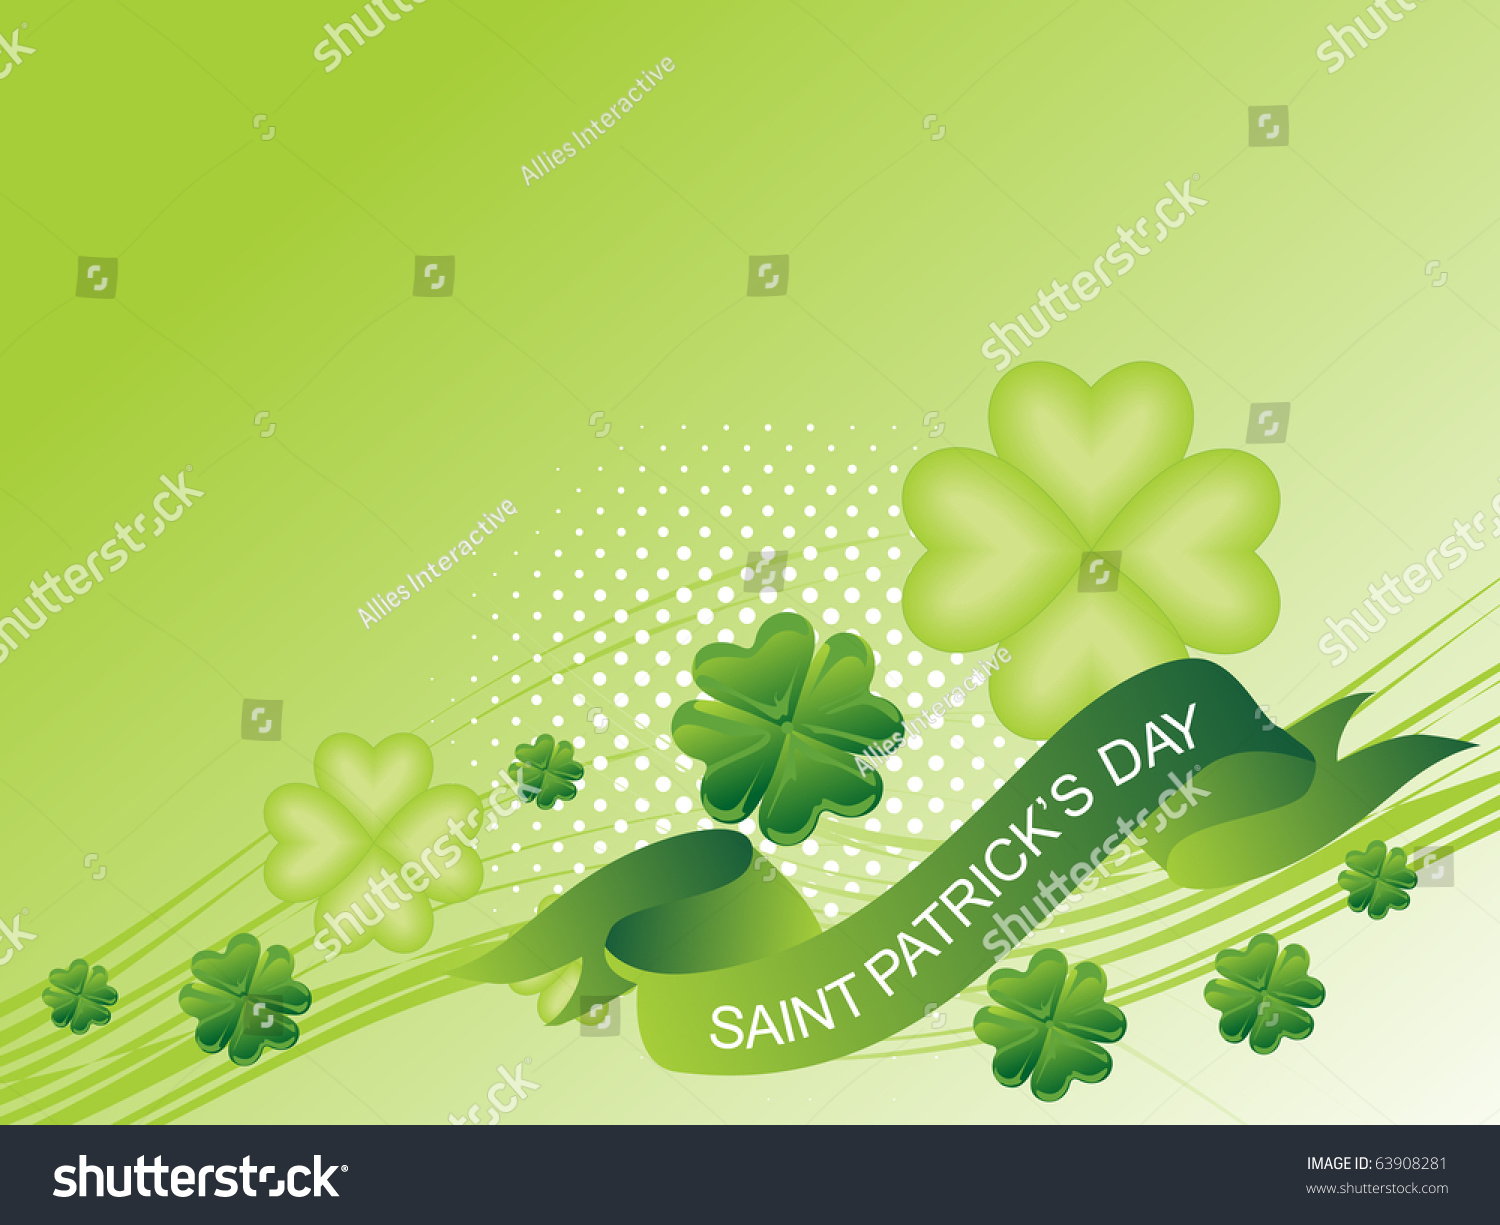 image March 2014 happy st patrick039s day